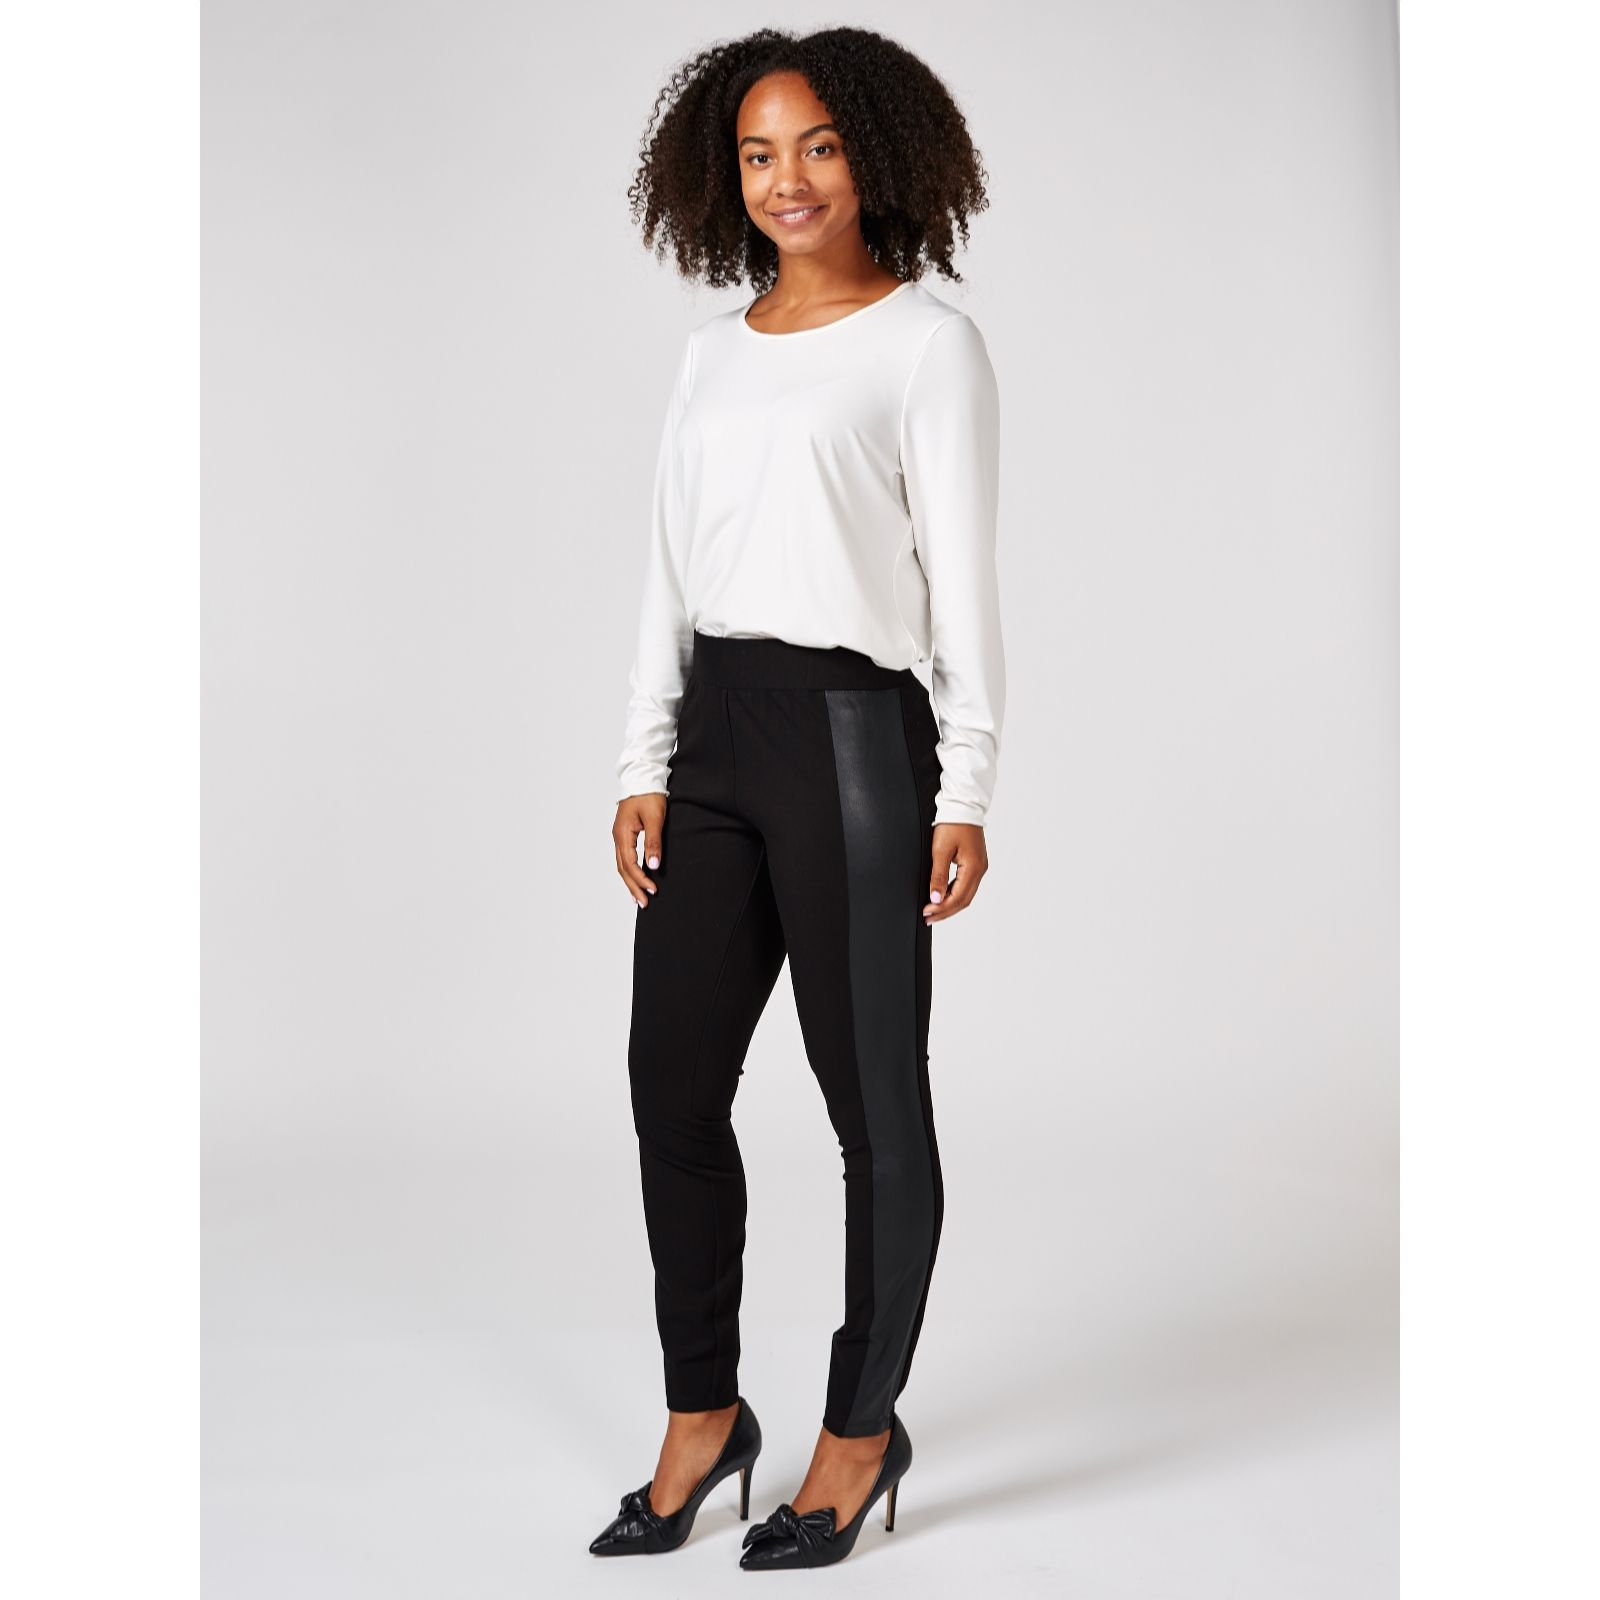 bca5a42446376 H by Halston Leggings with Faux Leather Side Panels Regular - QVC UK